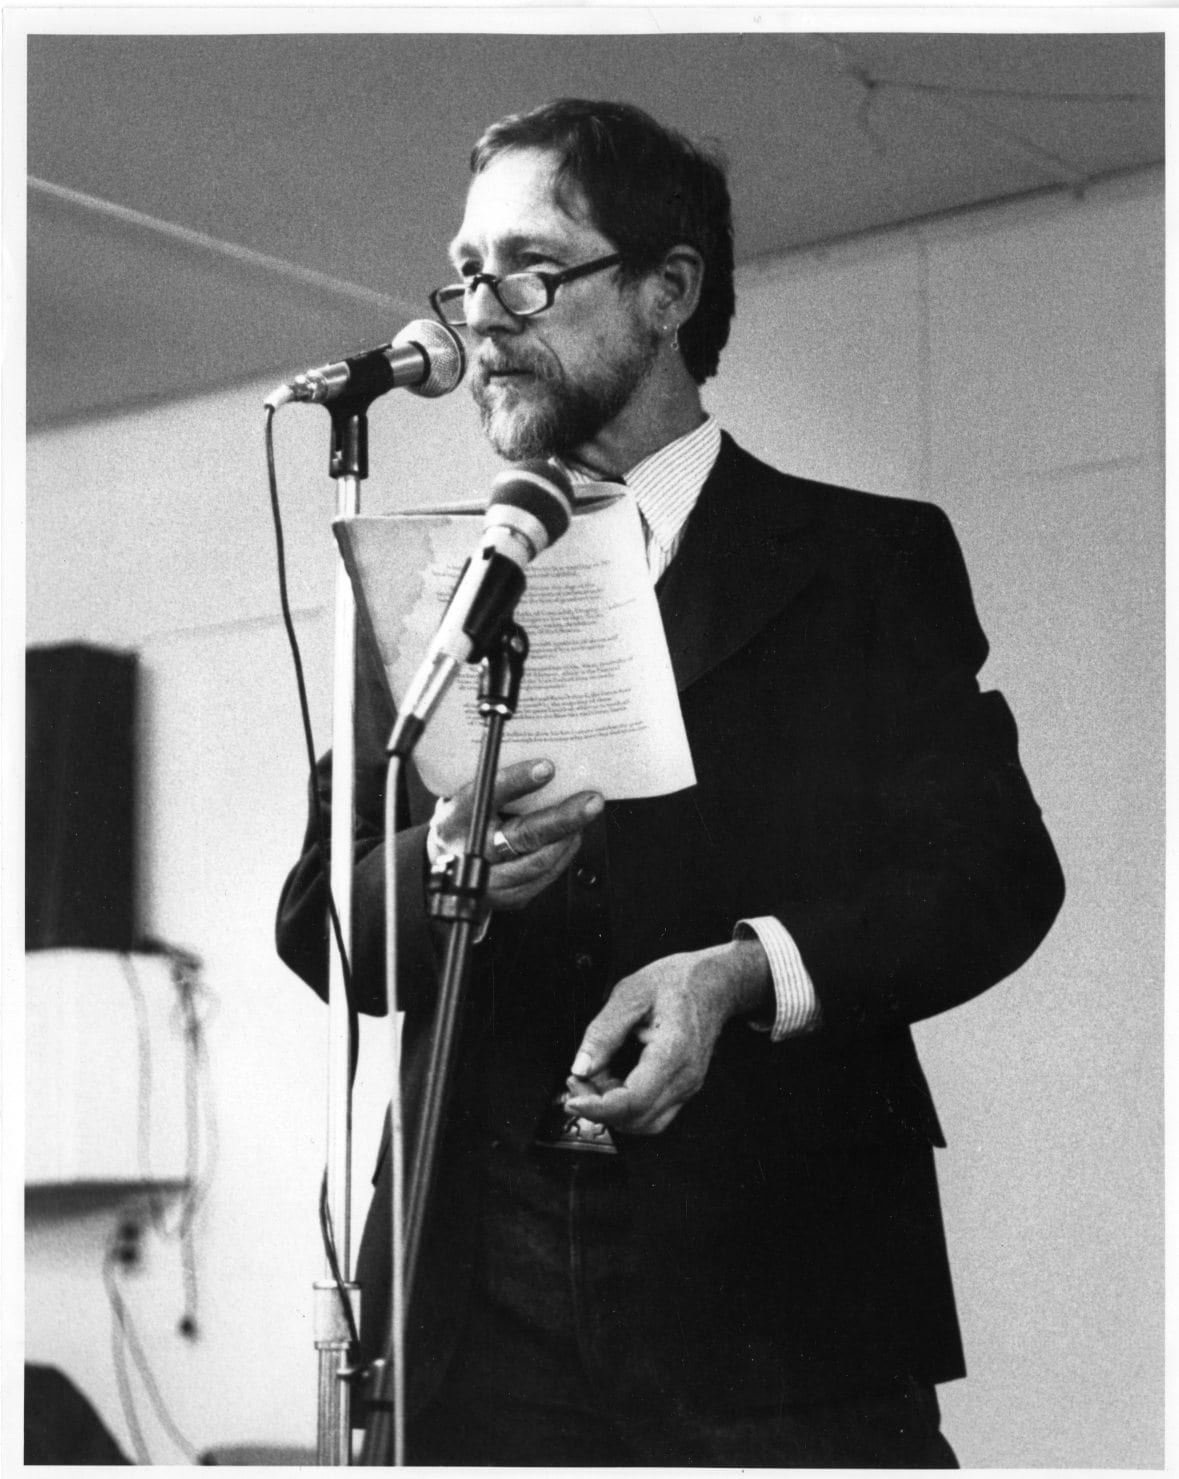 Gary Snyder, undated image from D-050 Gary Snyder Papers.